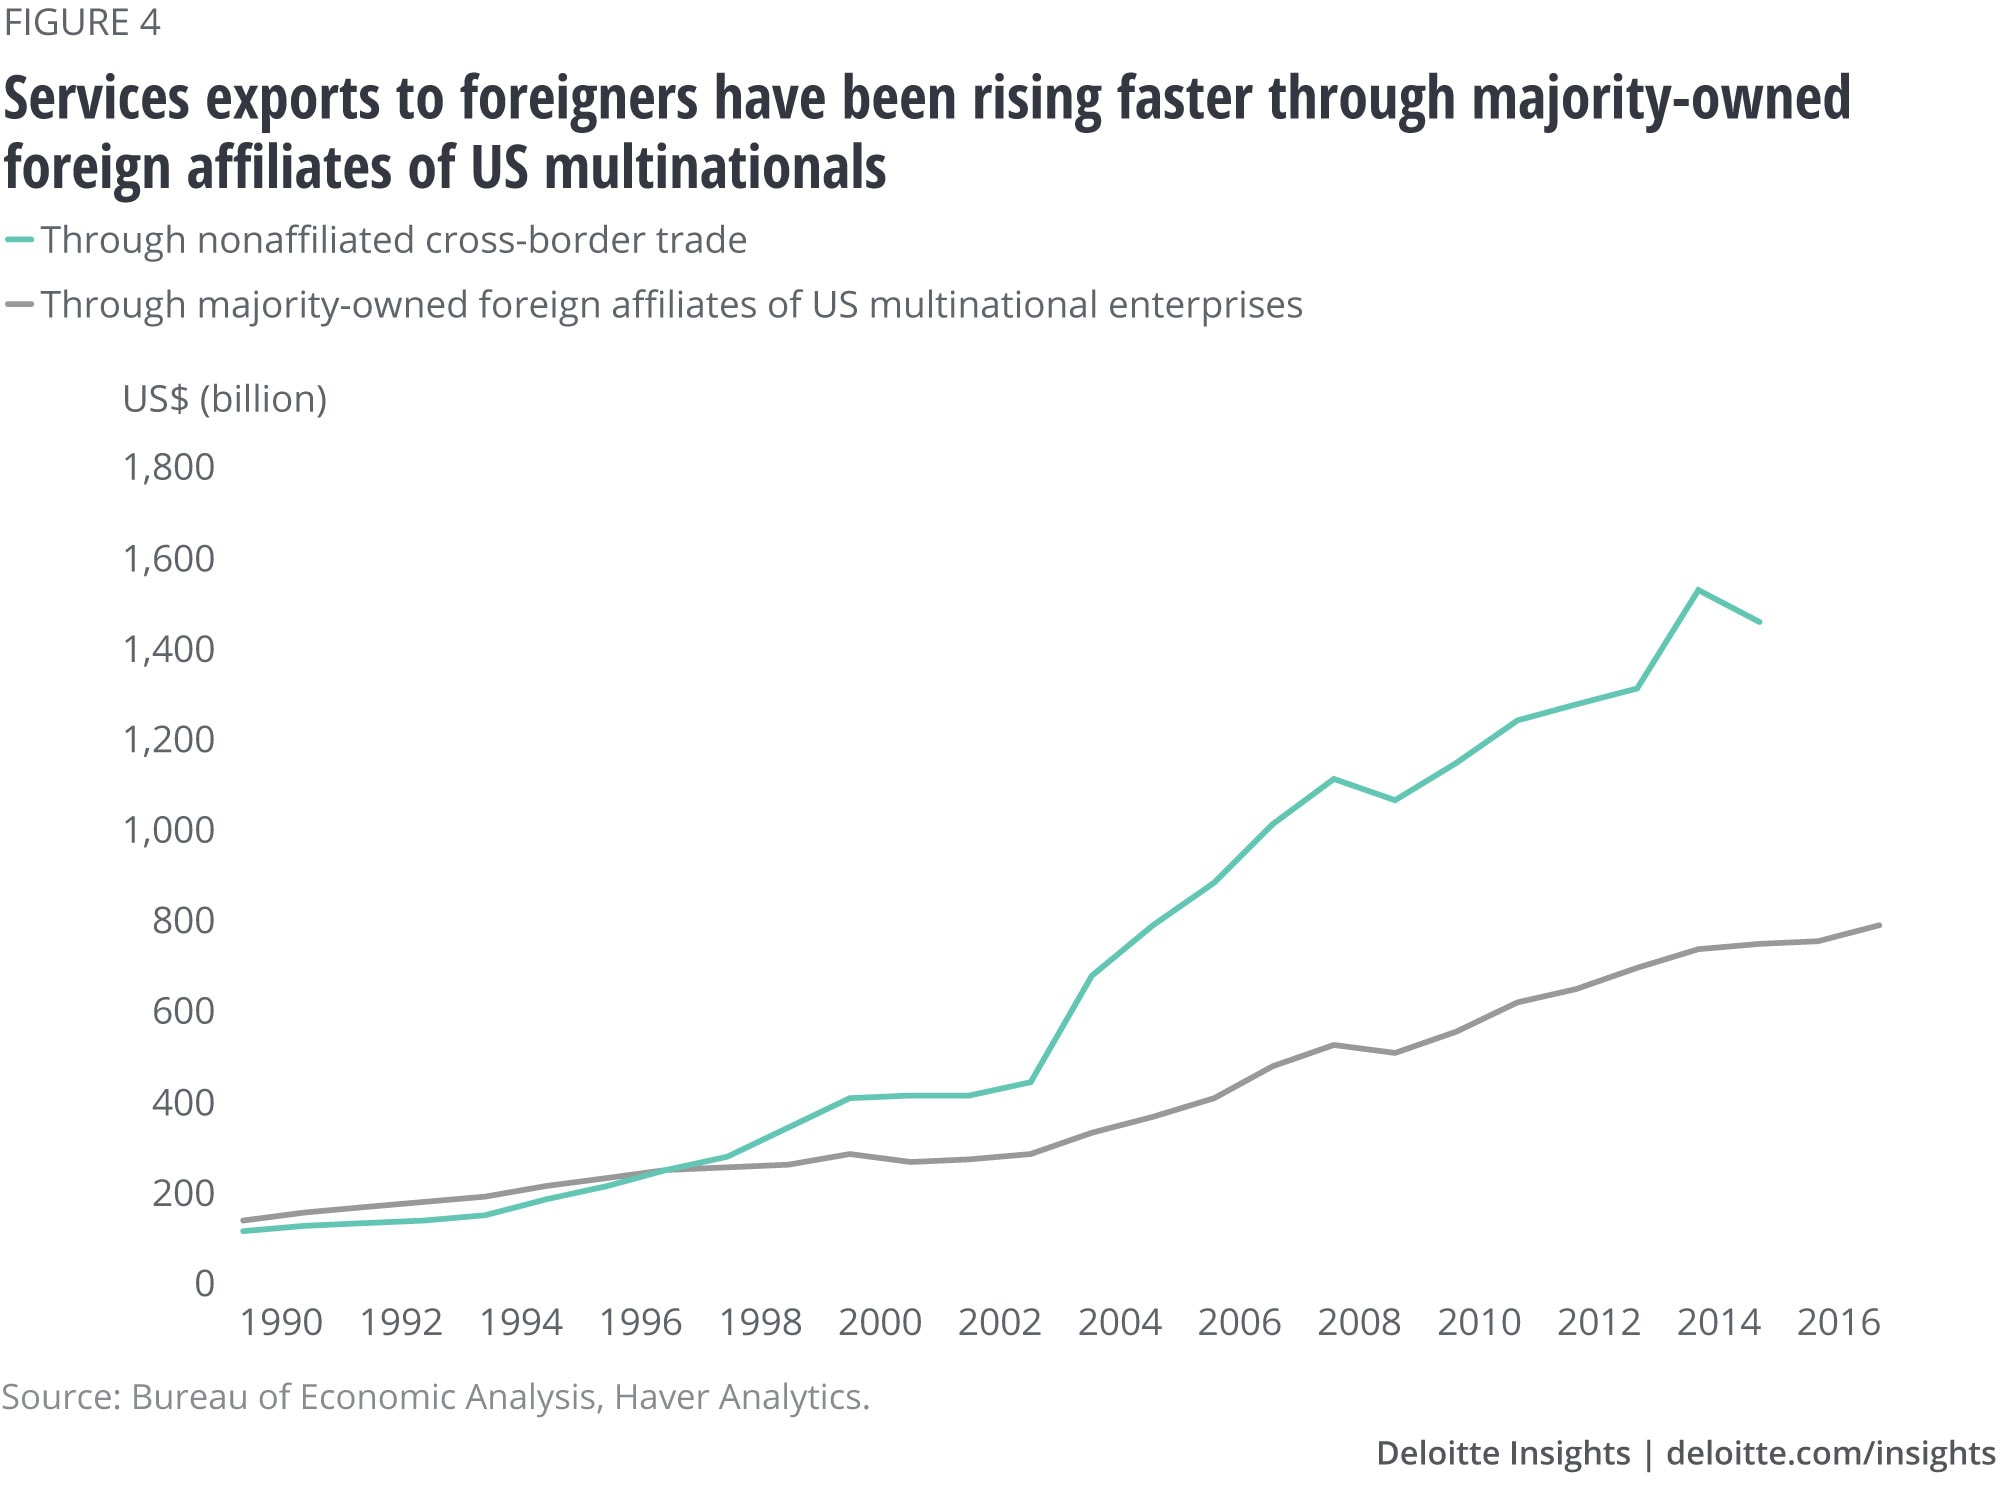 Services exports to foreigners have been rising faster through majority-owned foreign affiliates of US multinationals